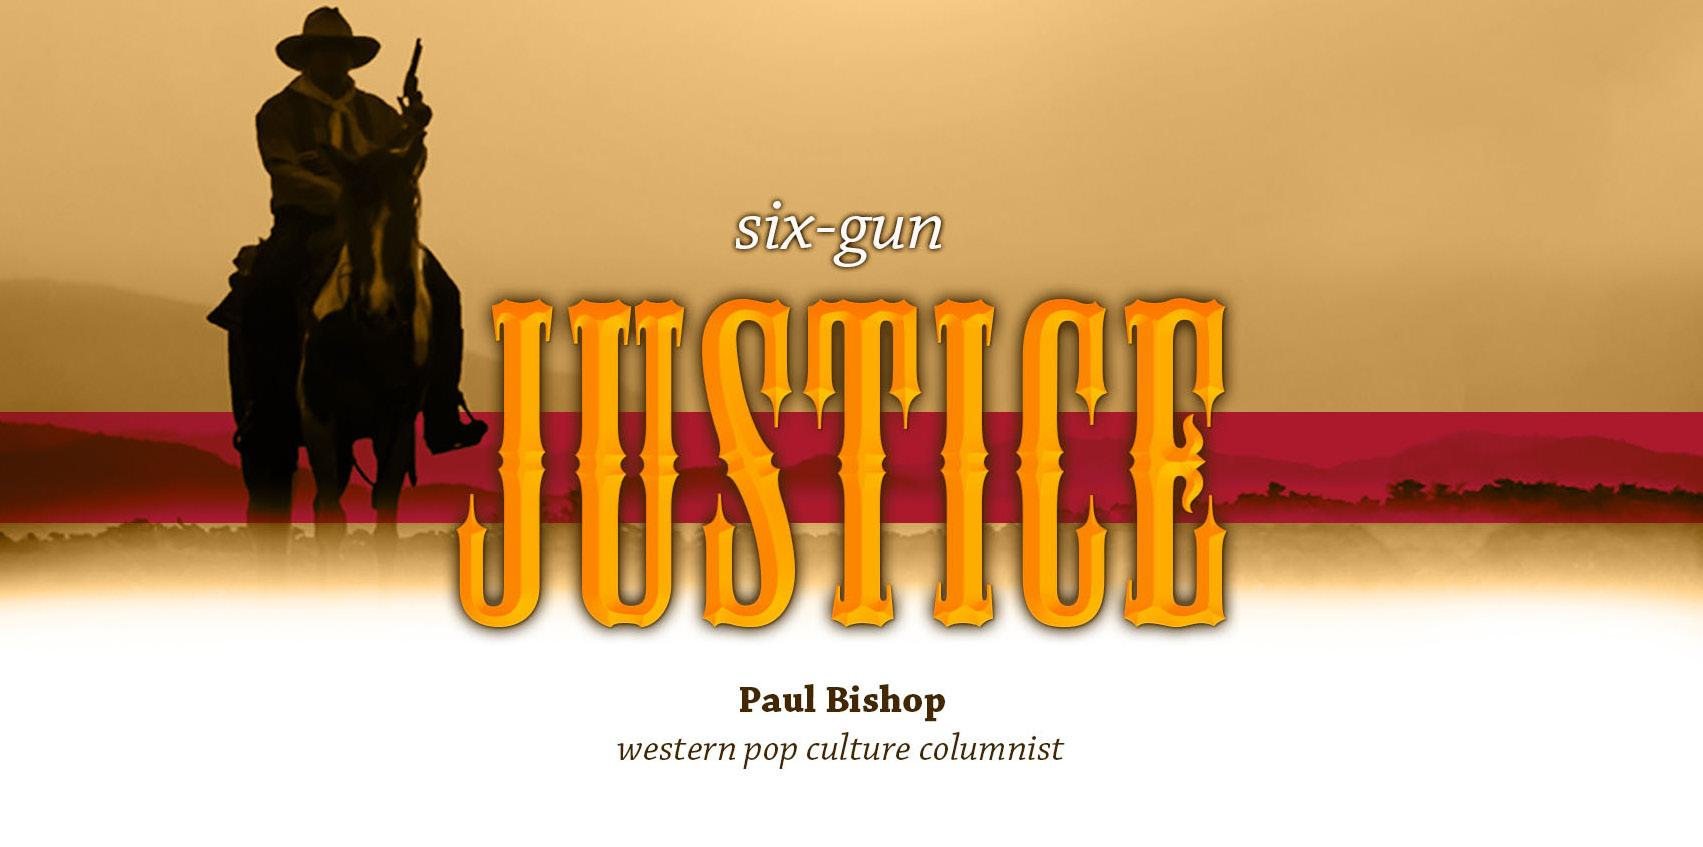 Page 8 of Six-Gun Justice by Western Pop Culture Columnist Paul Bishop